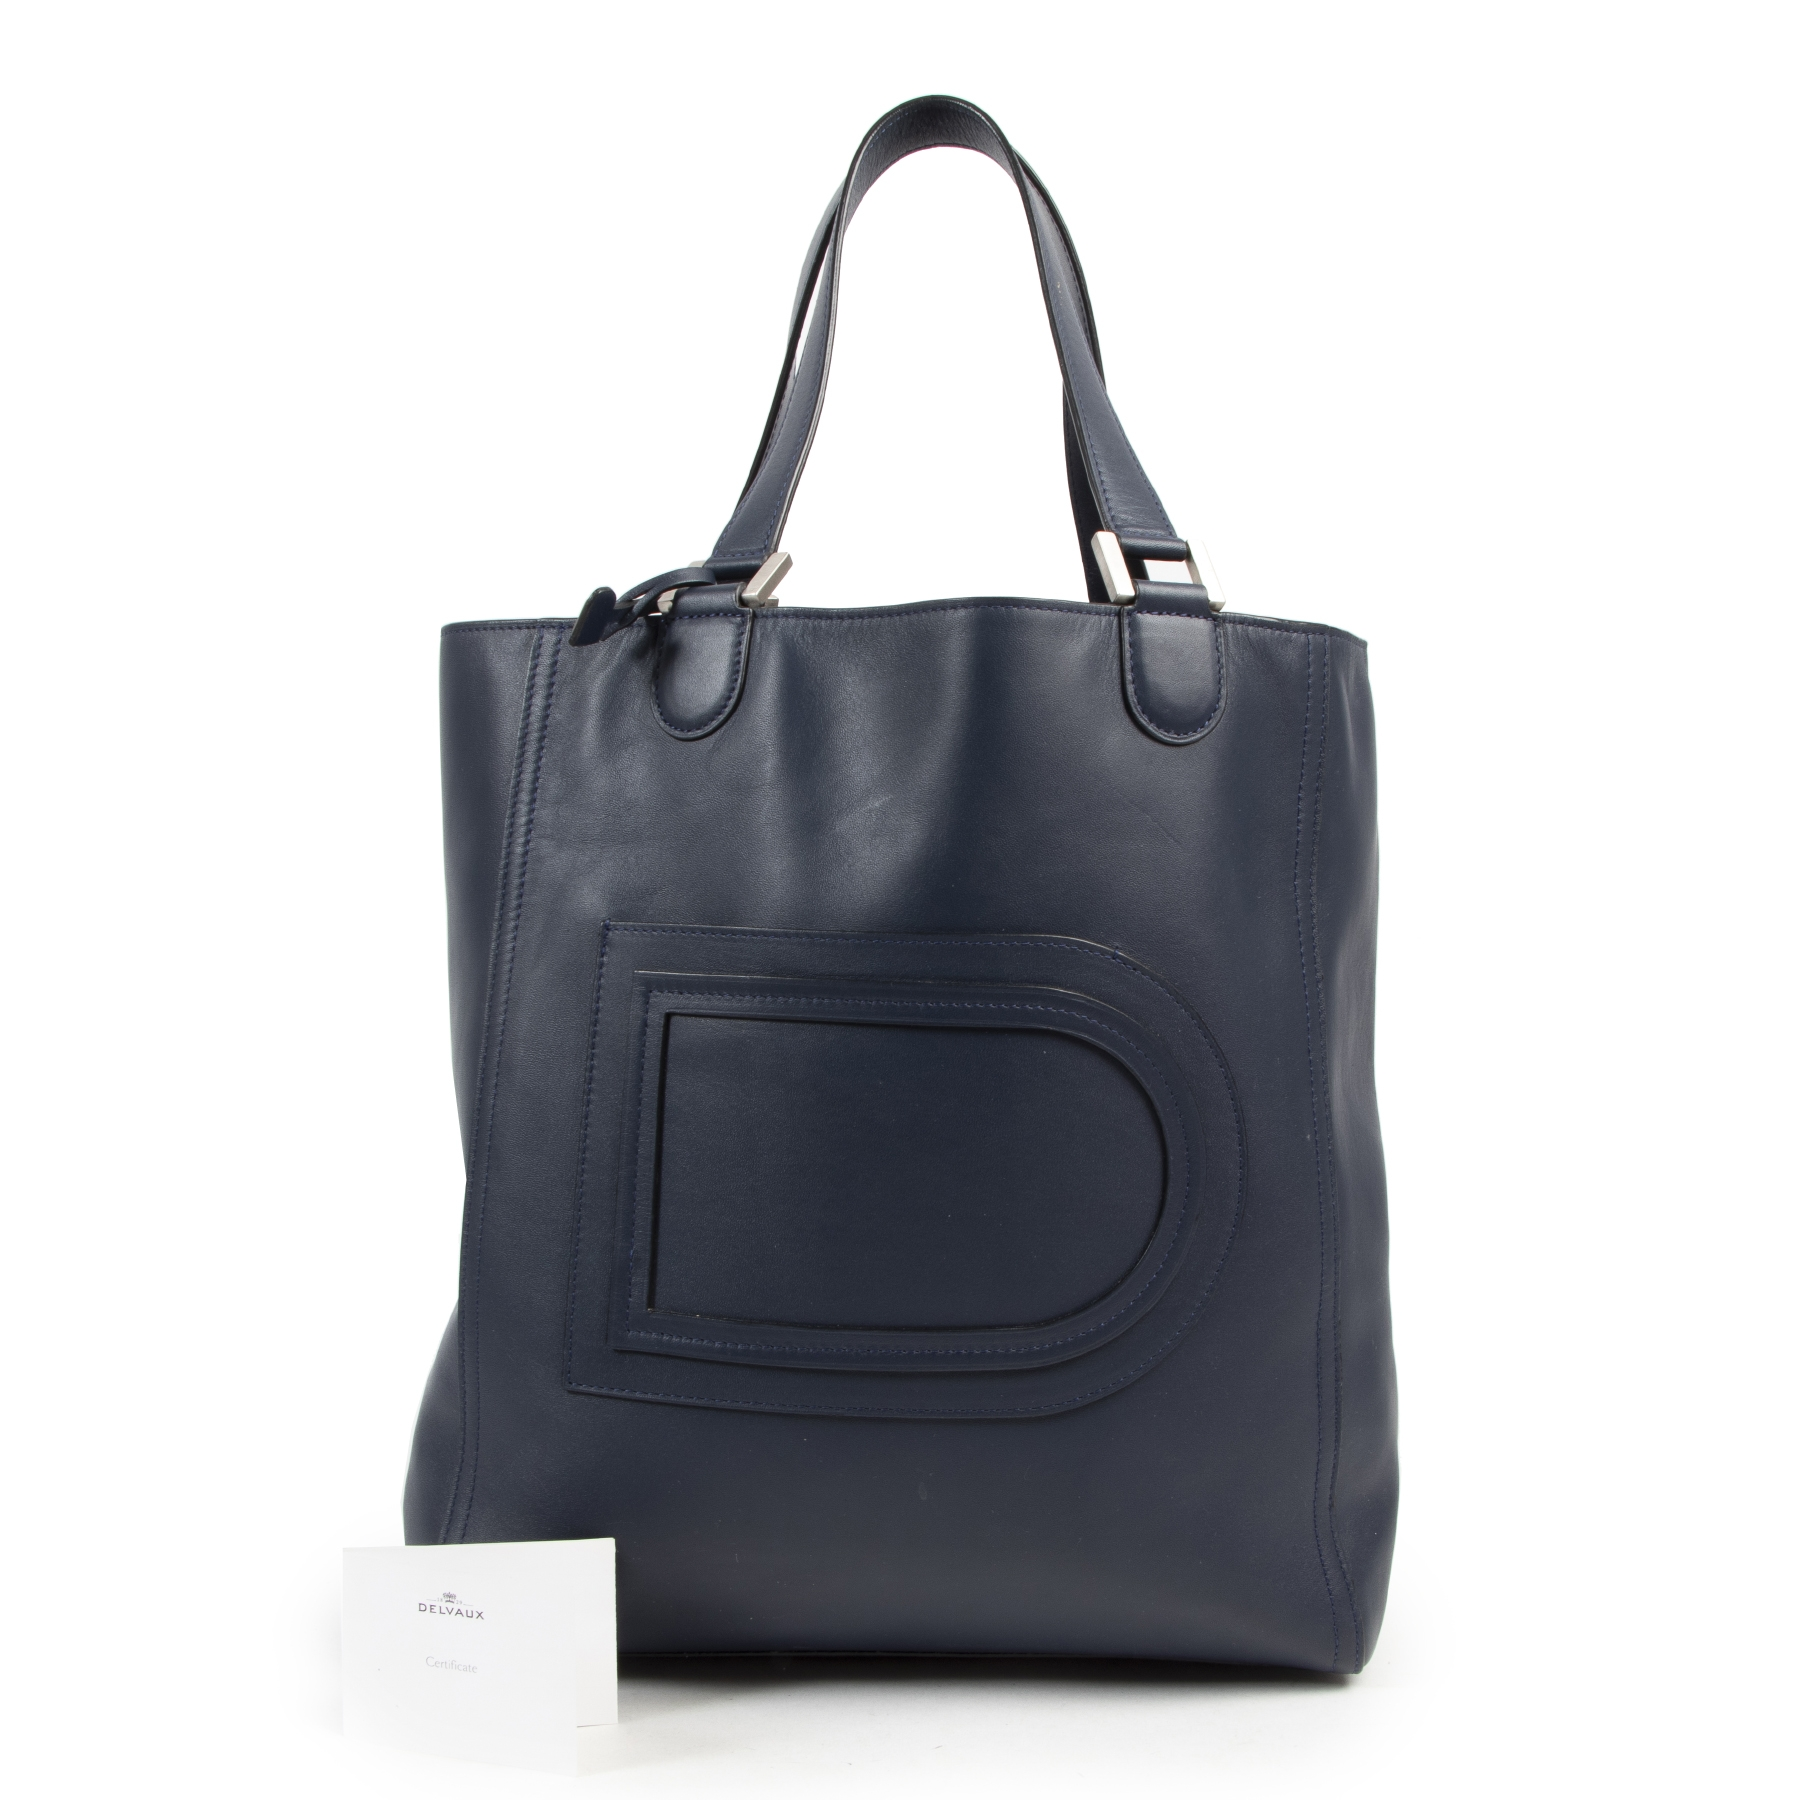 Delvaux Navy Tote Shoulder Bag. Authentieke tweedehands Delvaux handtassen bij LabelLOV Antwerpen. Authentique seconde-main luxury en ligne webshop LabelLOV. Authentic preloved Delvaux handbags at LabelLOV Antwerp.